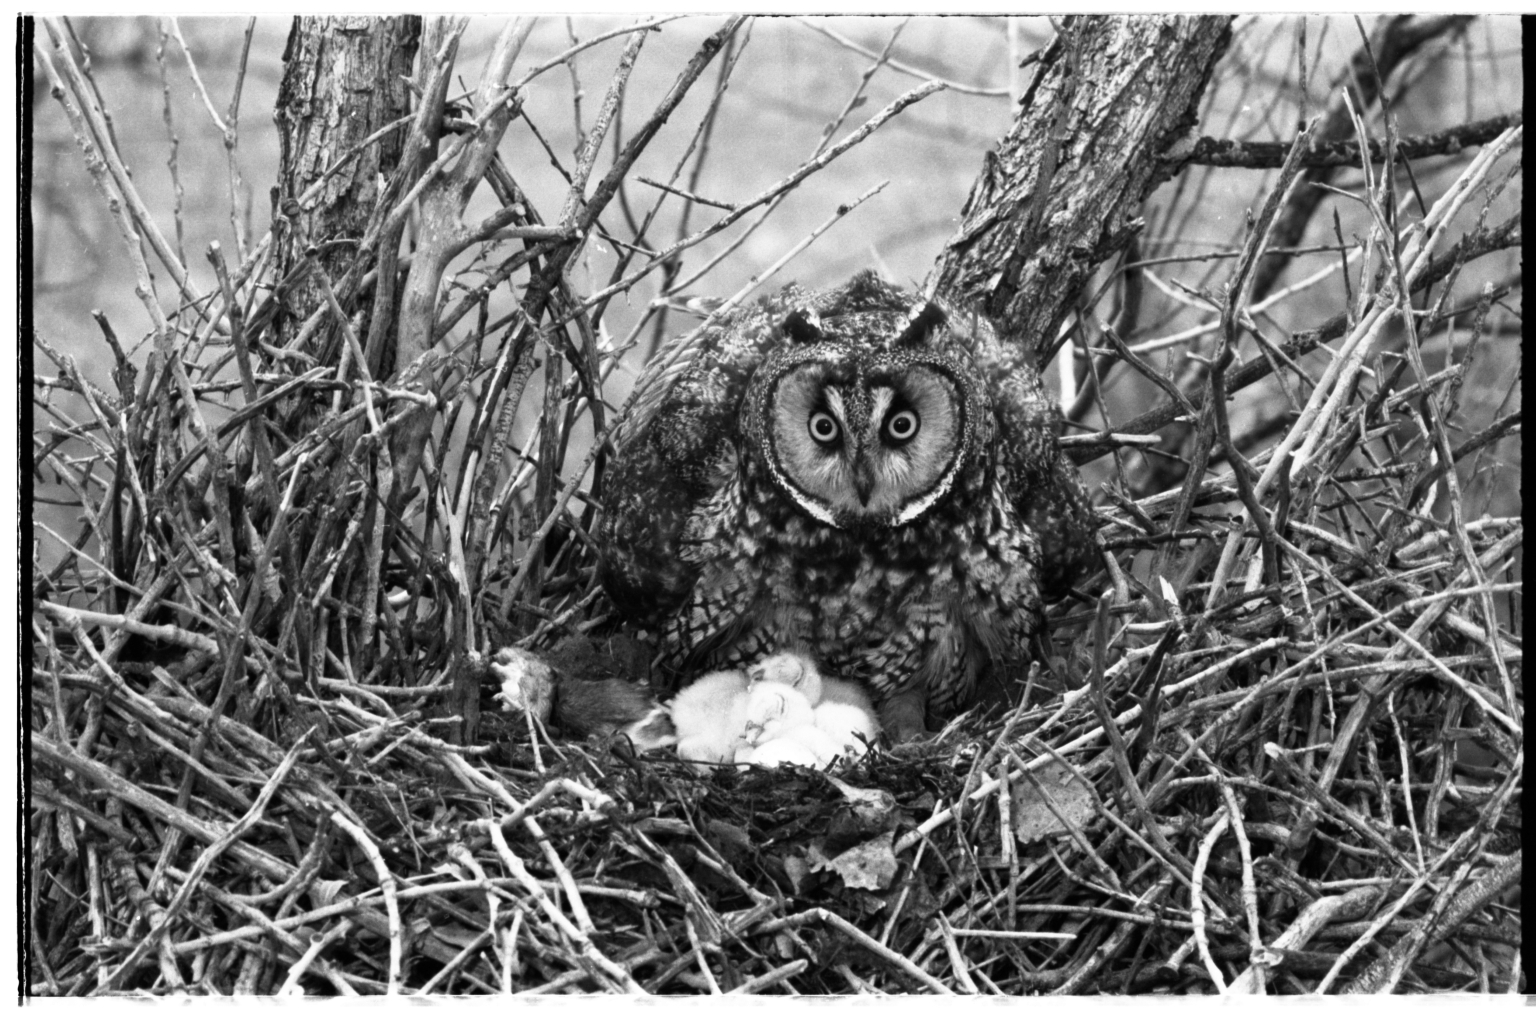 Owl and Nest